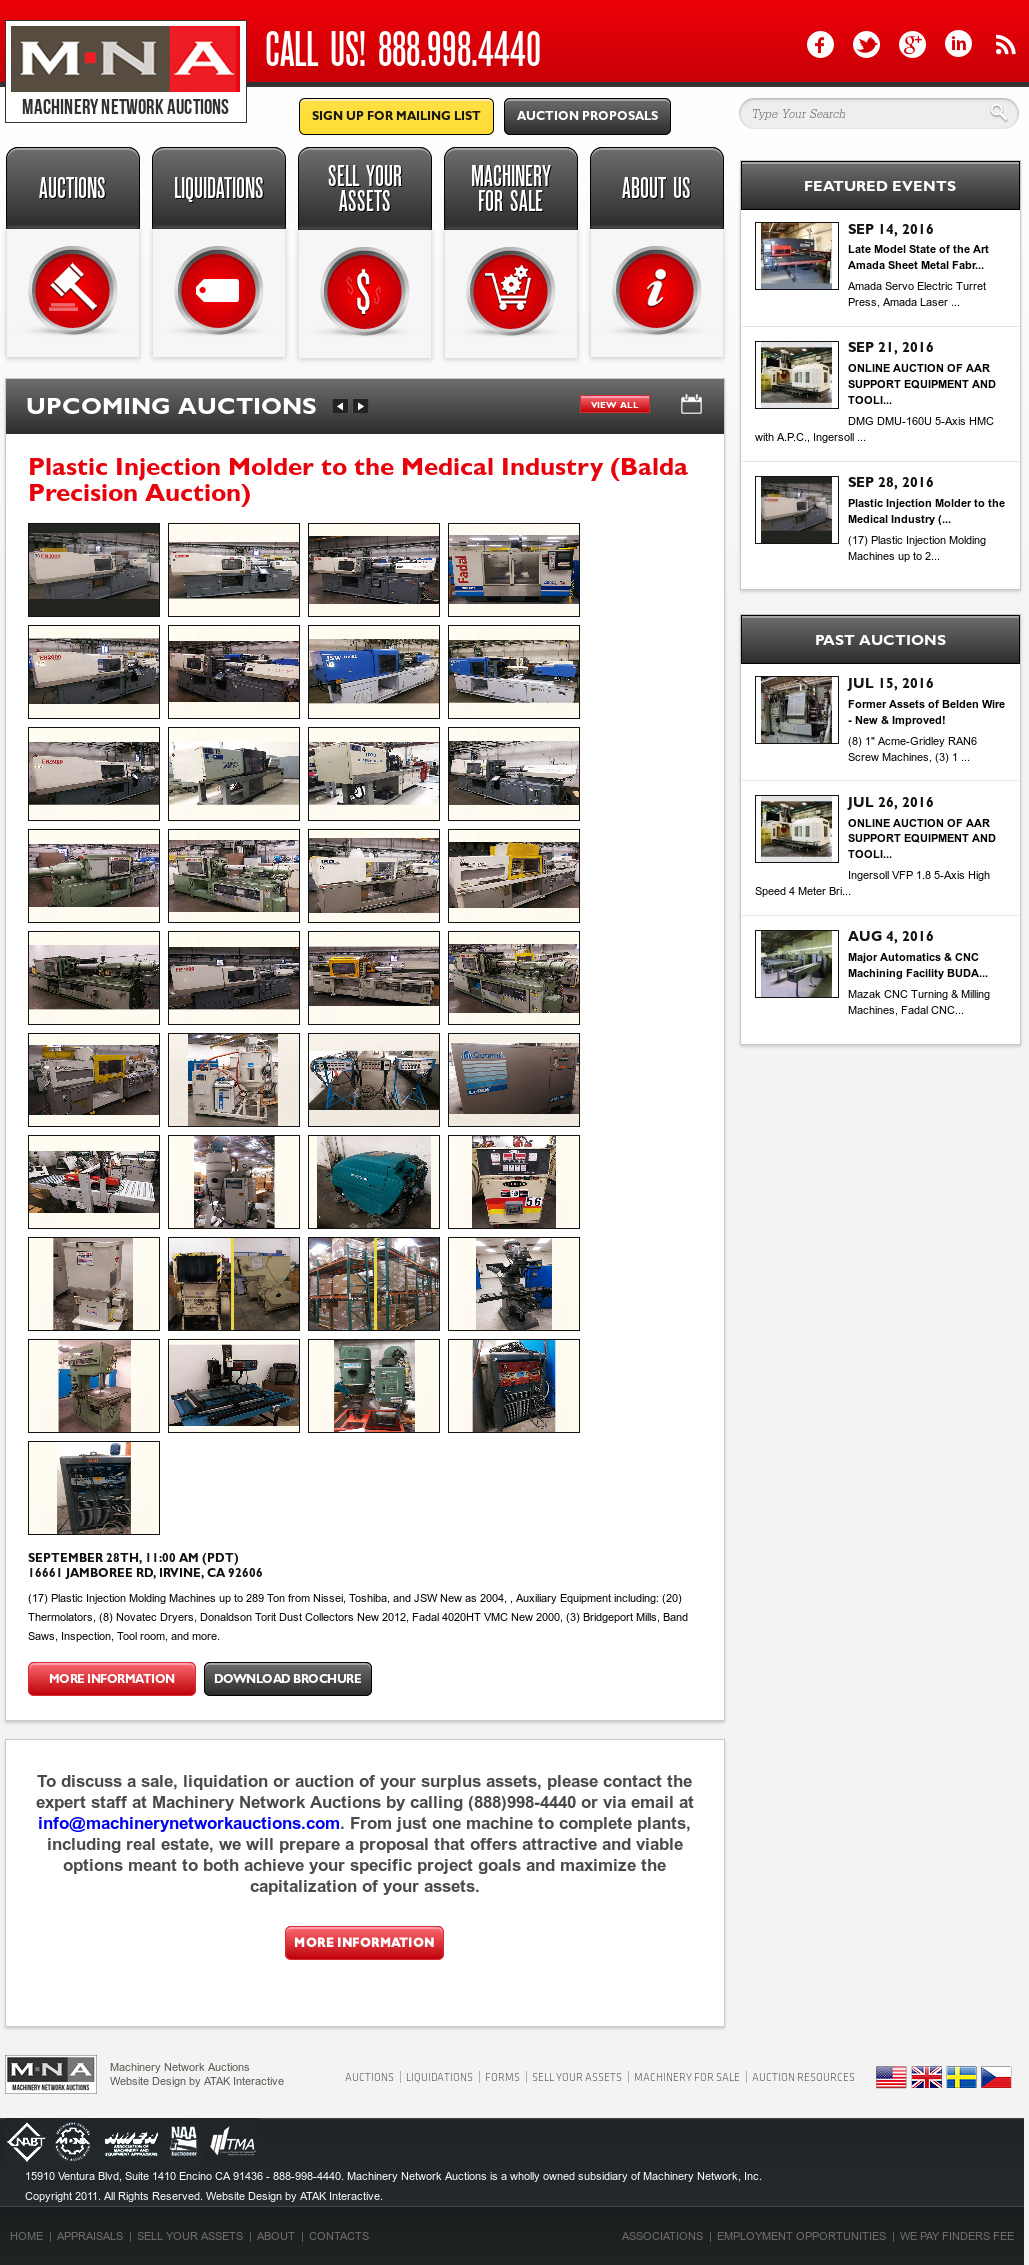 Machinery Network Auctions Competitors, Revenue and